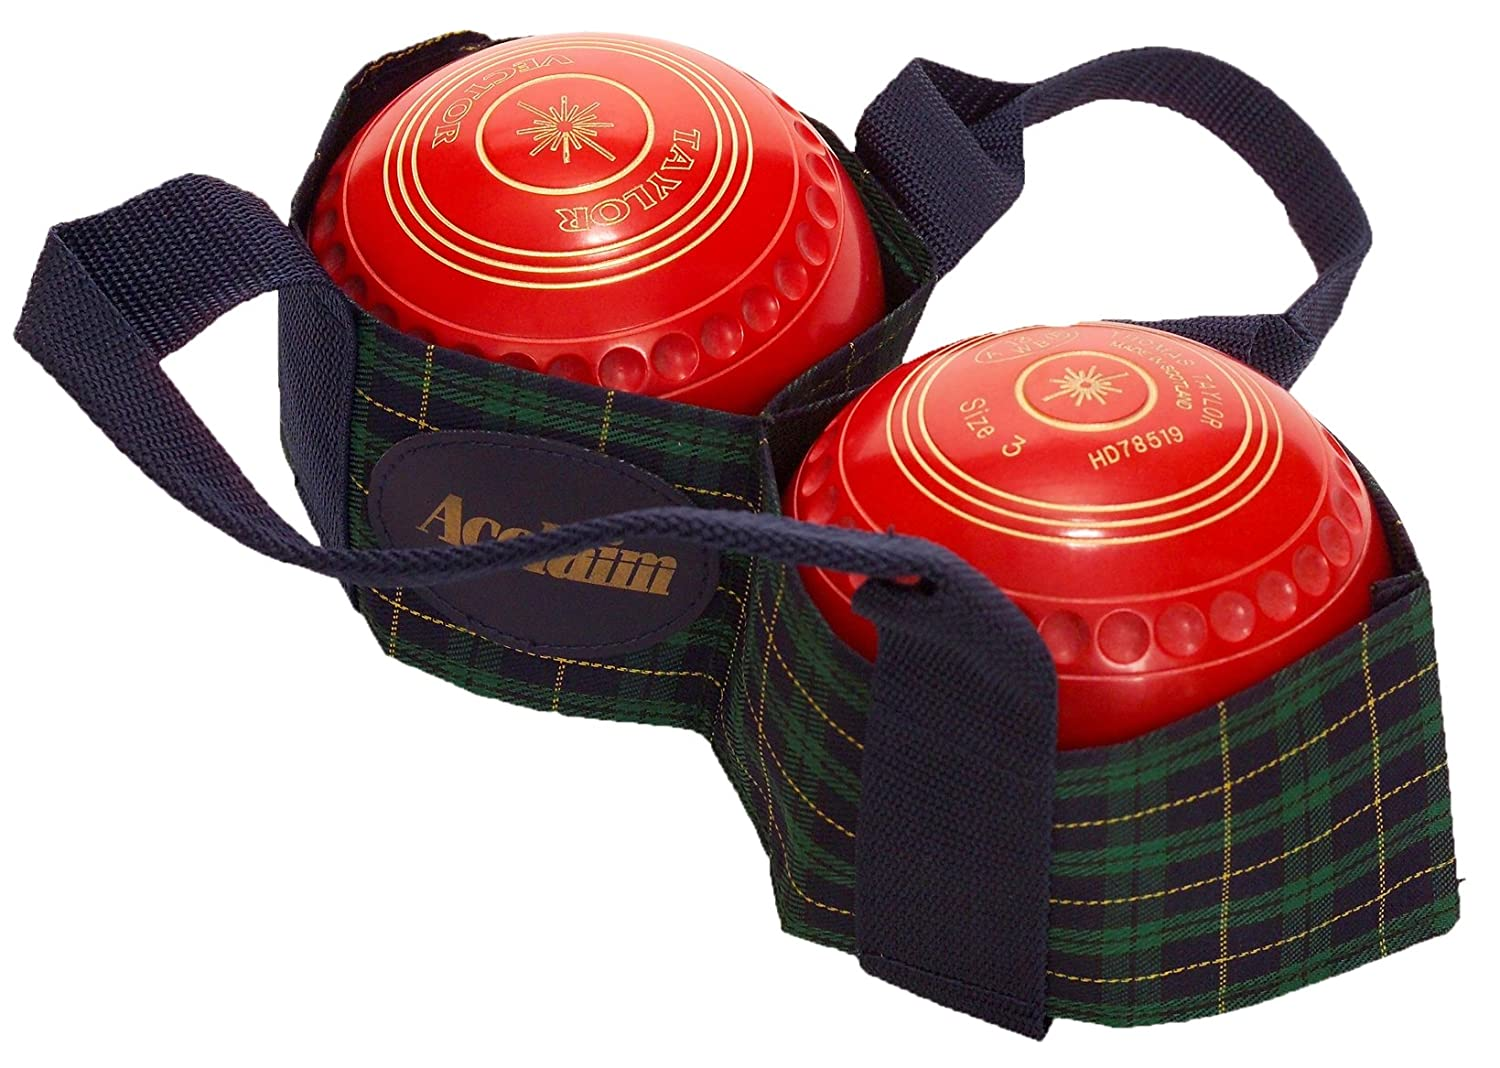 Acclaim Arran Tartan Two Bowl Level Lawn Flat Green Short Mat Bowls Carrier Red/Navy